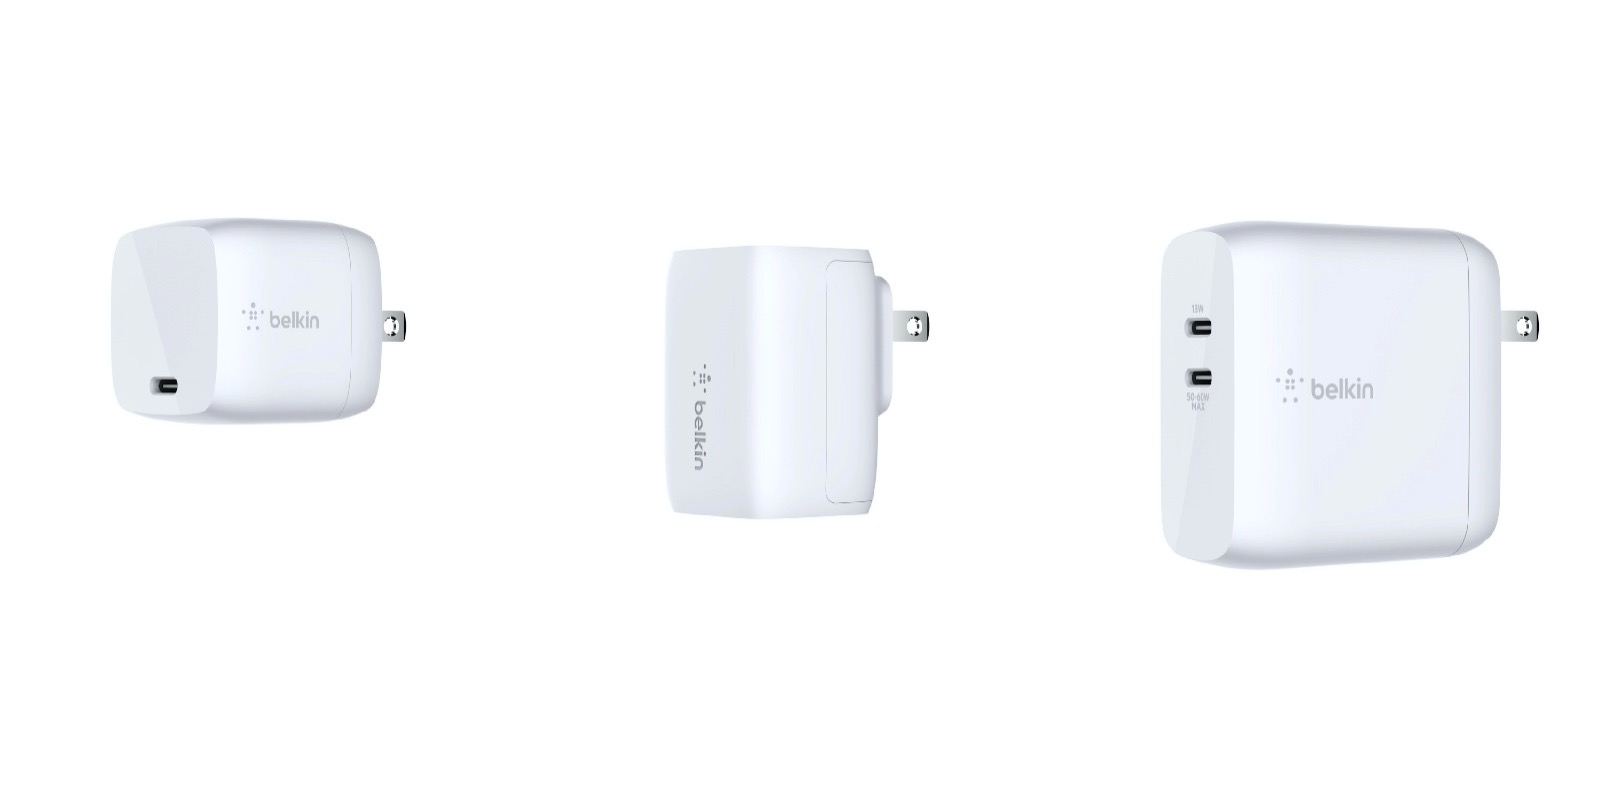 Belkin-CES2020-New-Products-9.jpg